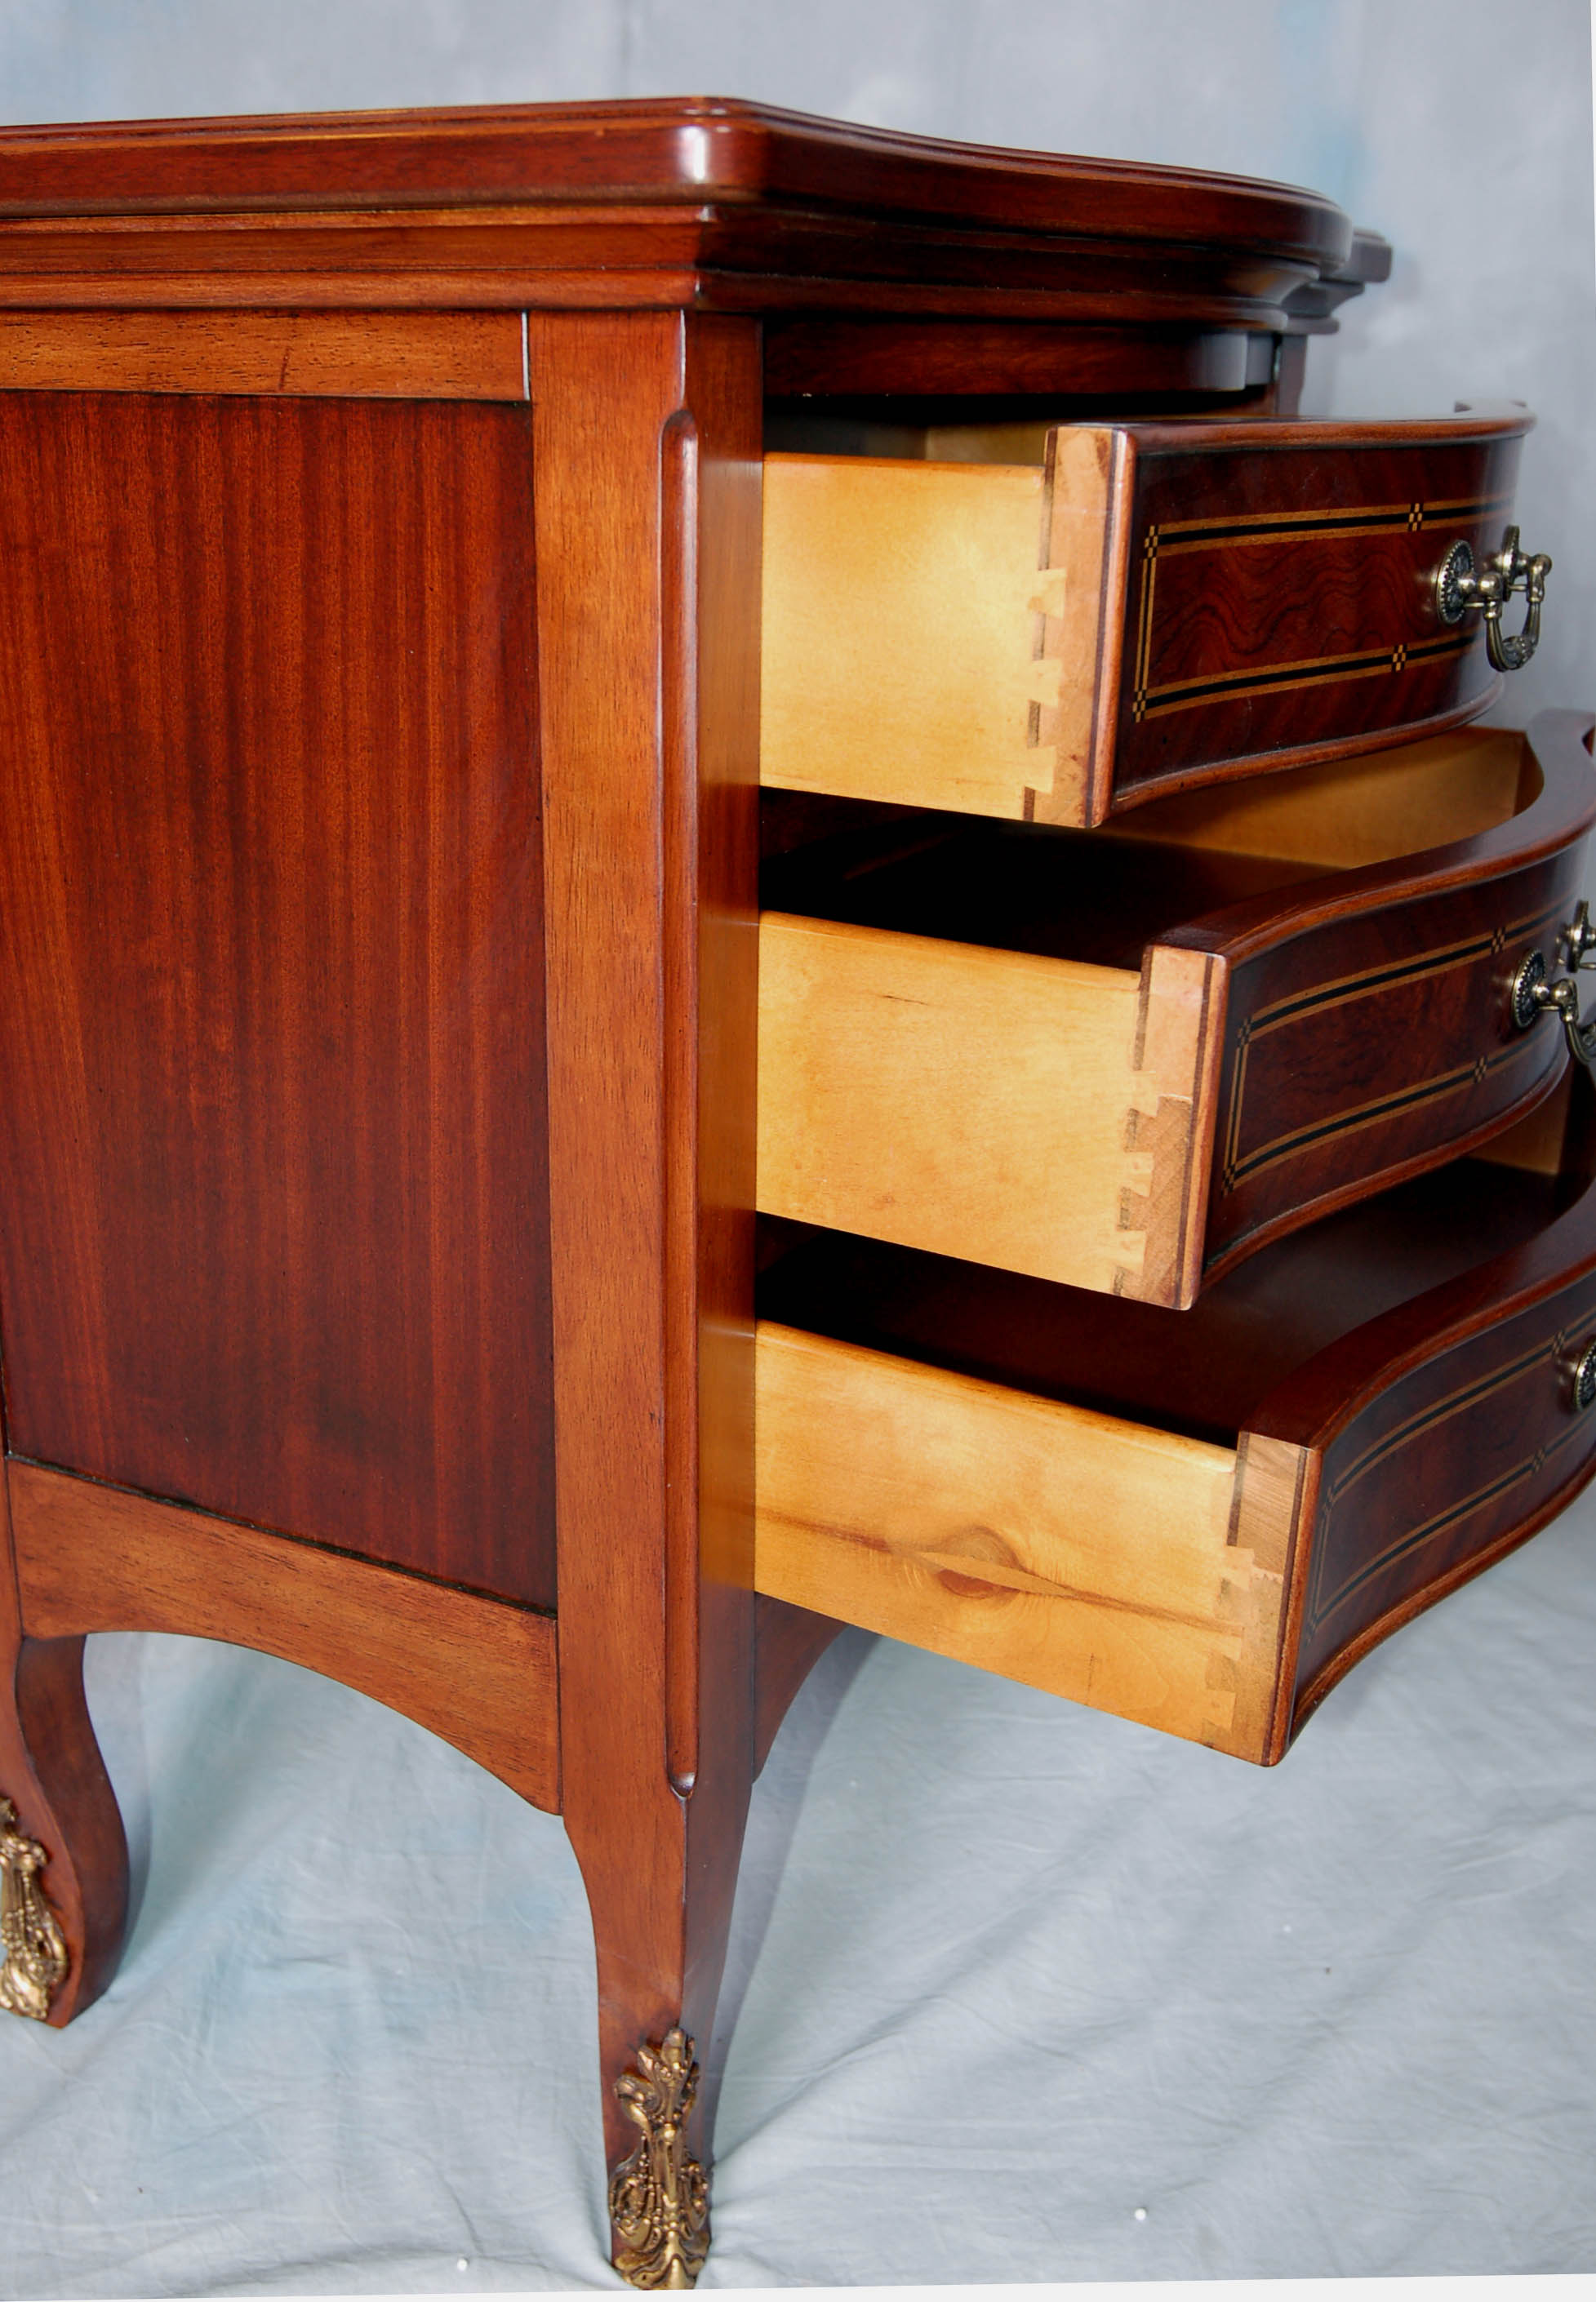 3 drawer solid wood cherry nightstand. Black Bedroom Furniture Sets. Home Design Ideas